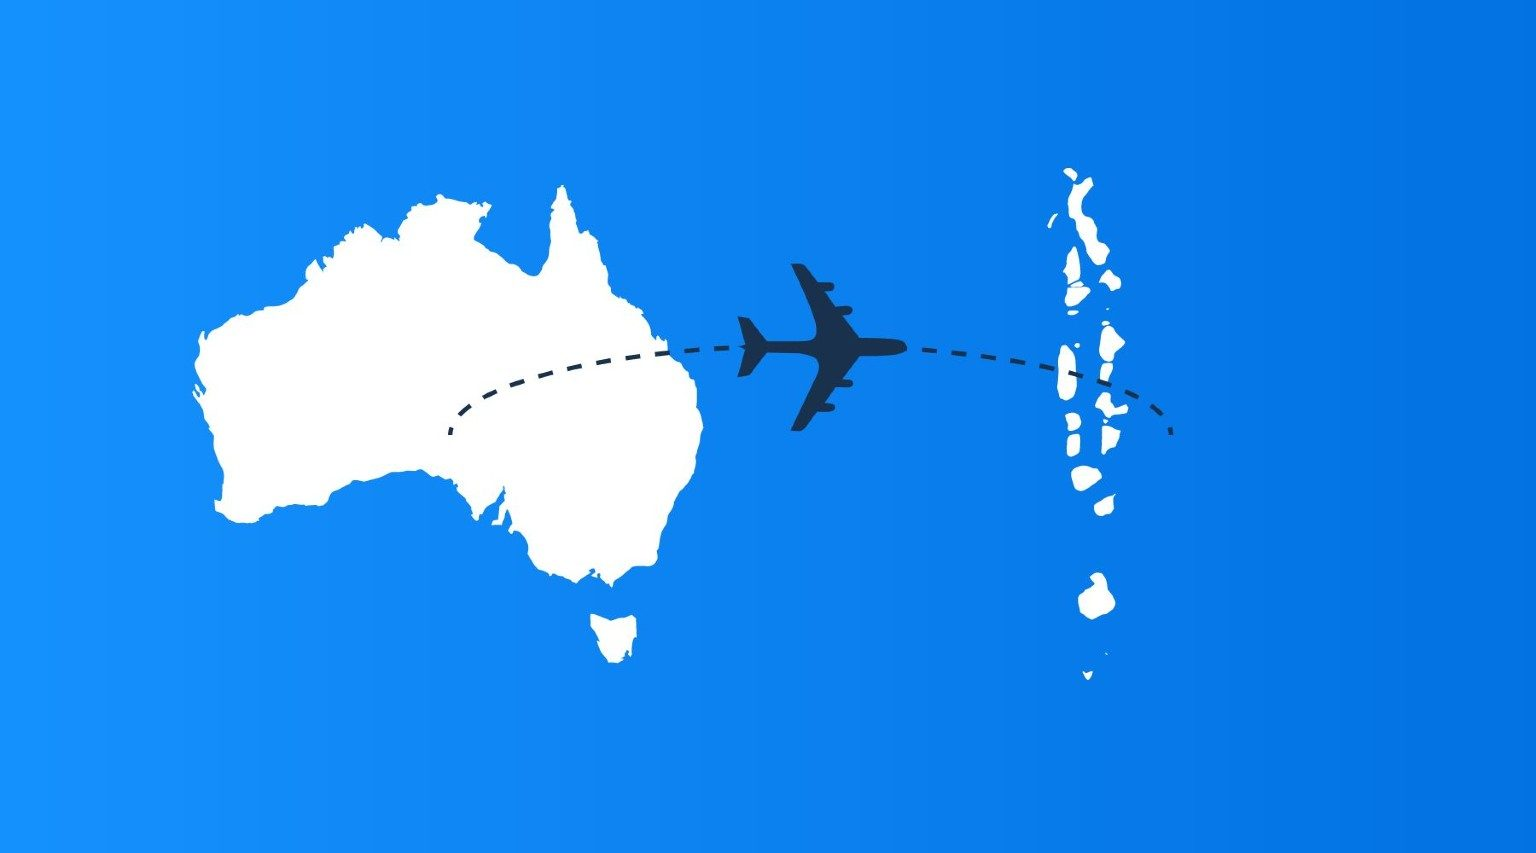 From Australia to Maldives map